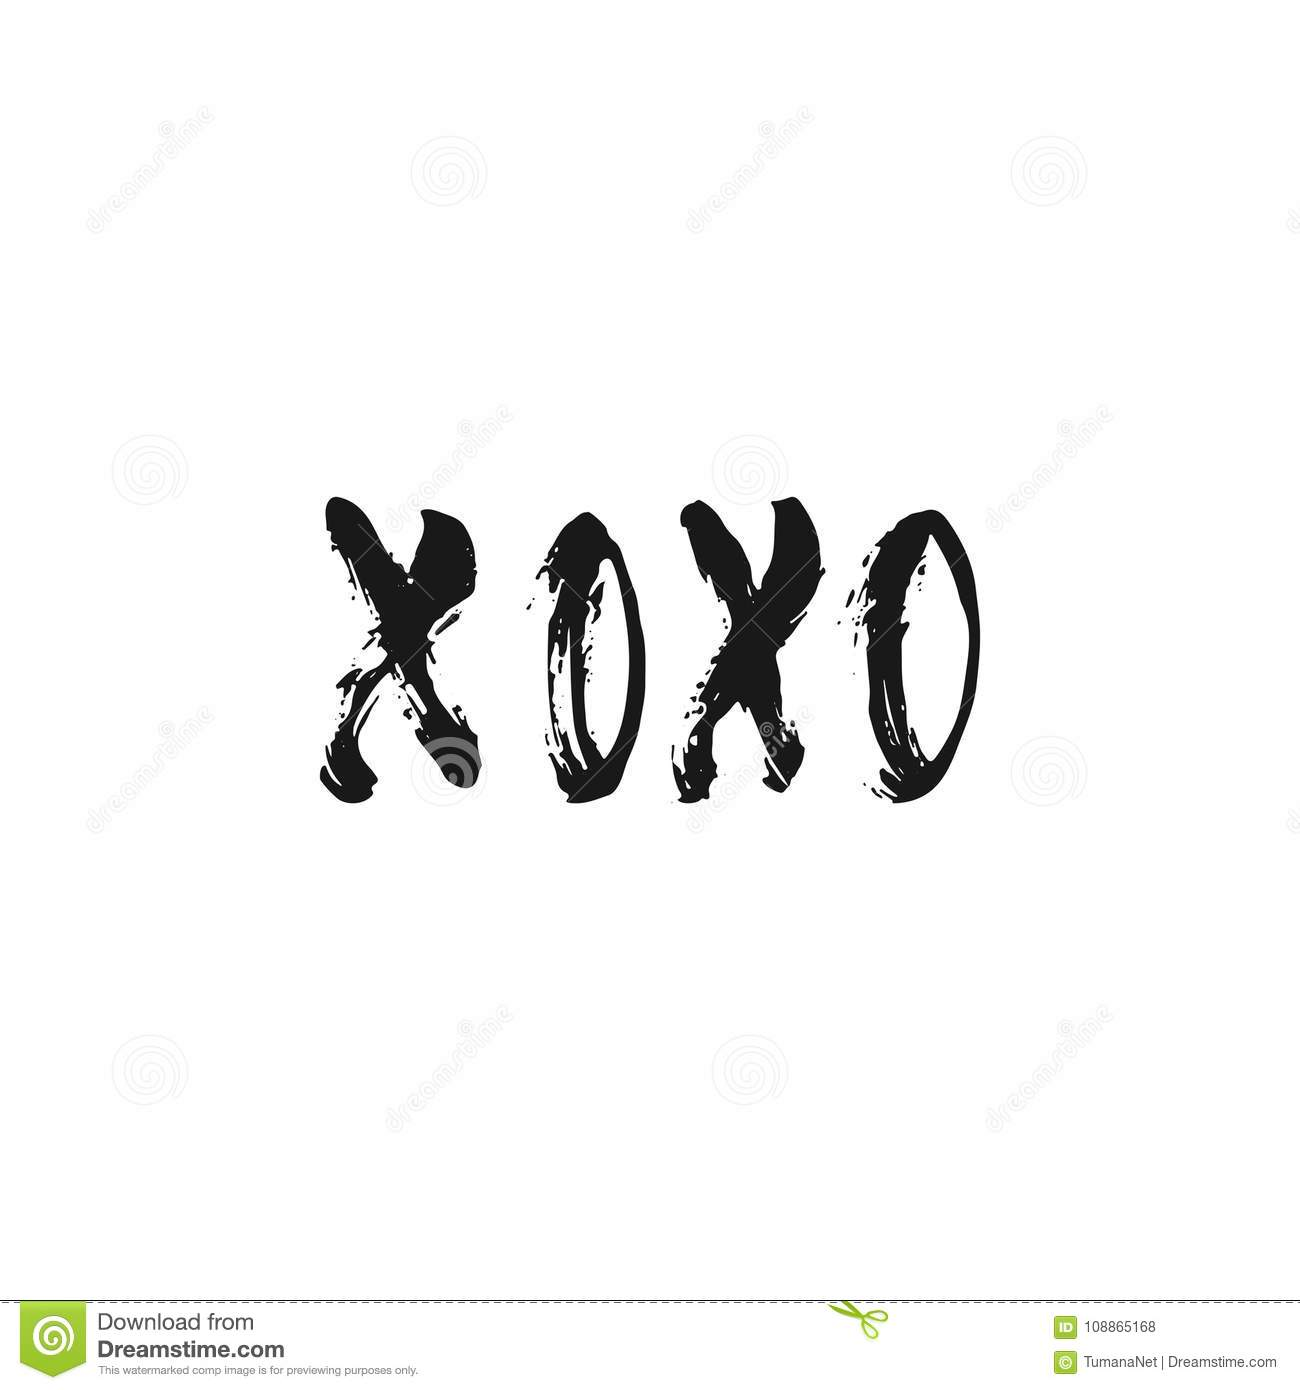 Xoxo Hand Drawn Lettering Phrase For Valentines Day Isolated On